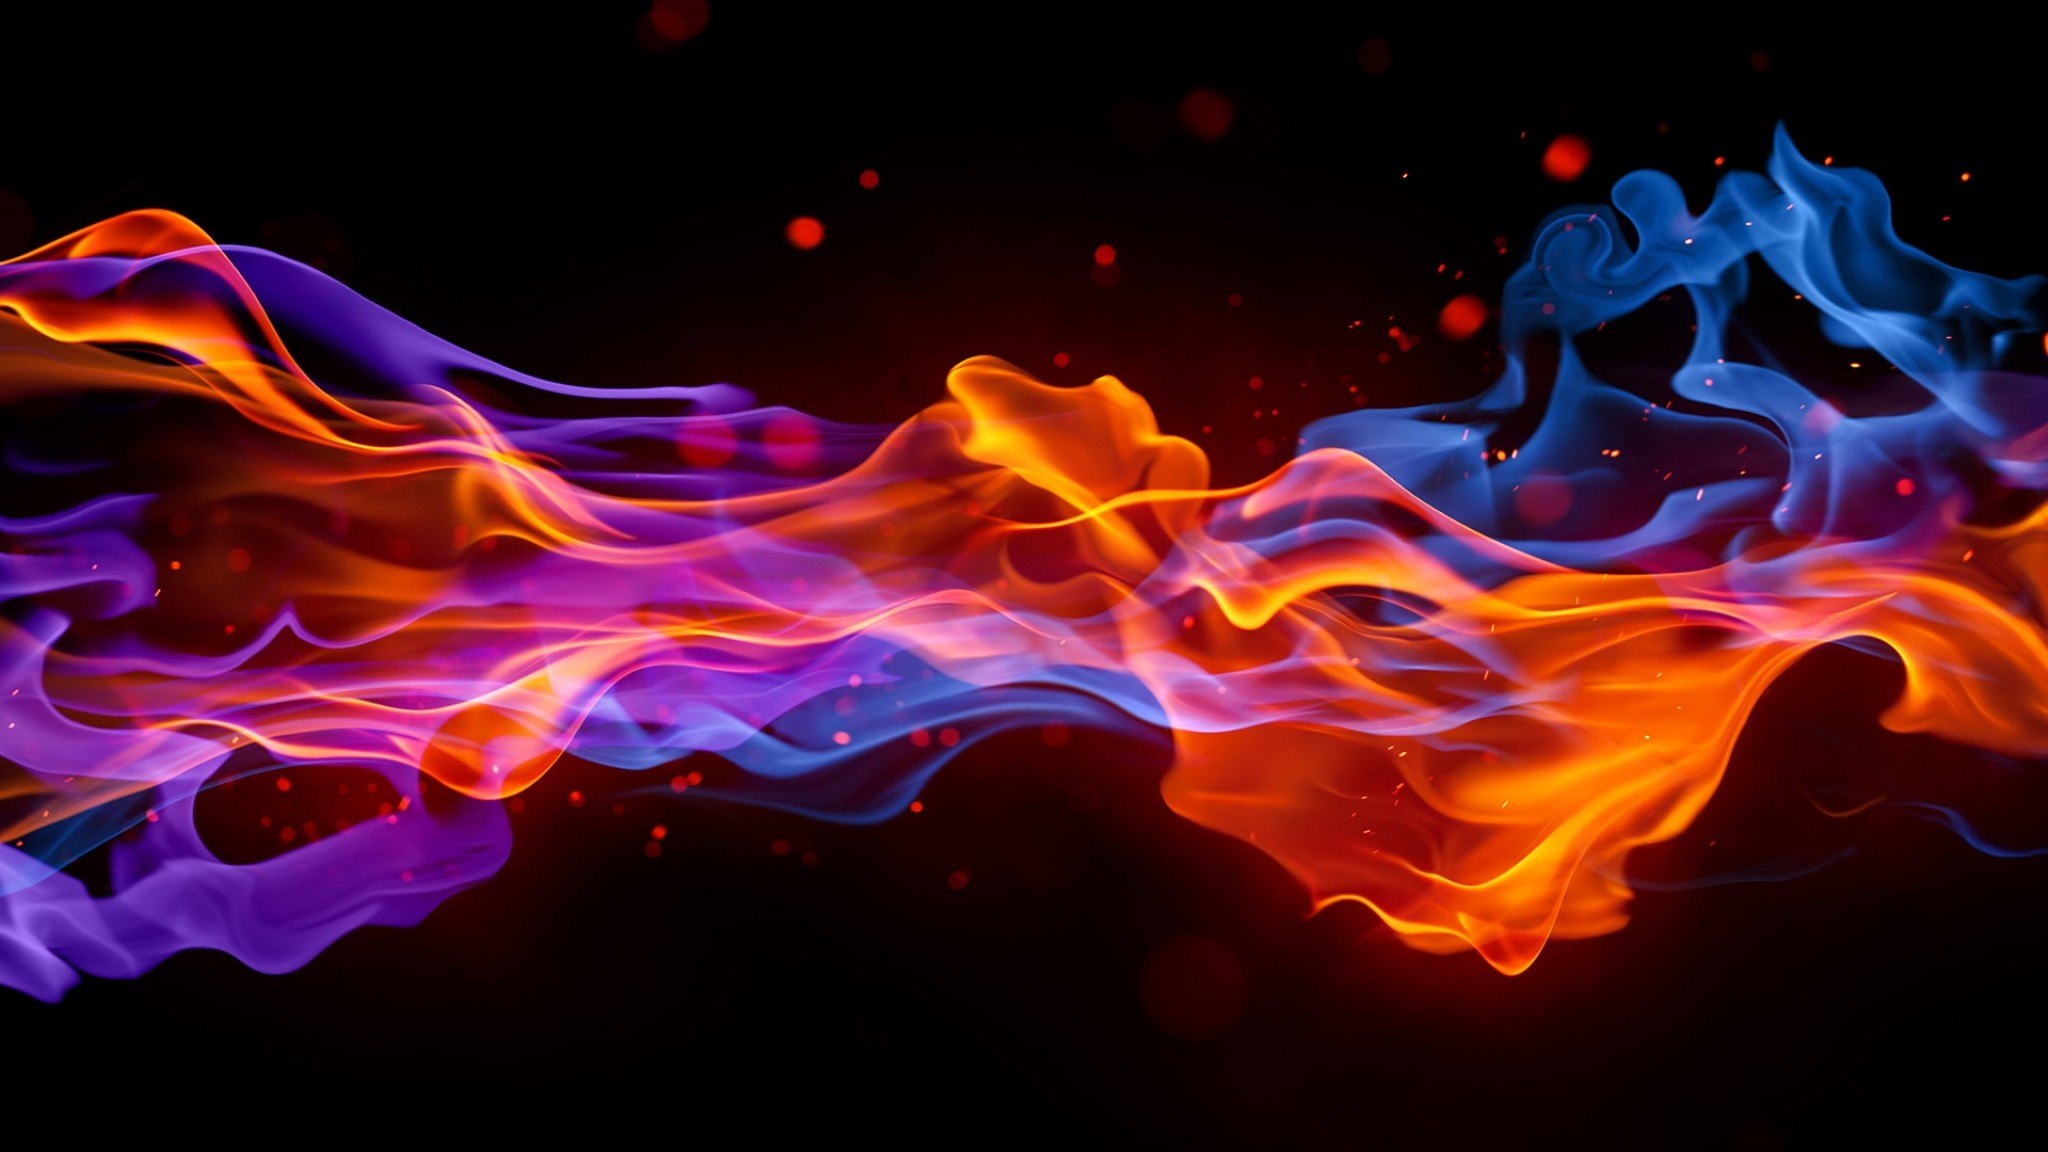 Download Wallpaper Smoke, Fire, Bright, Colorful, Background .